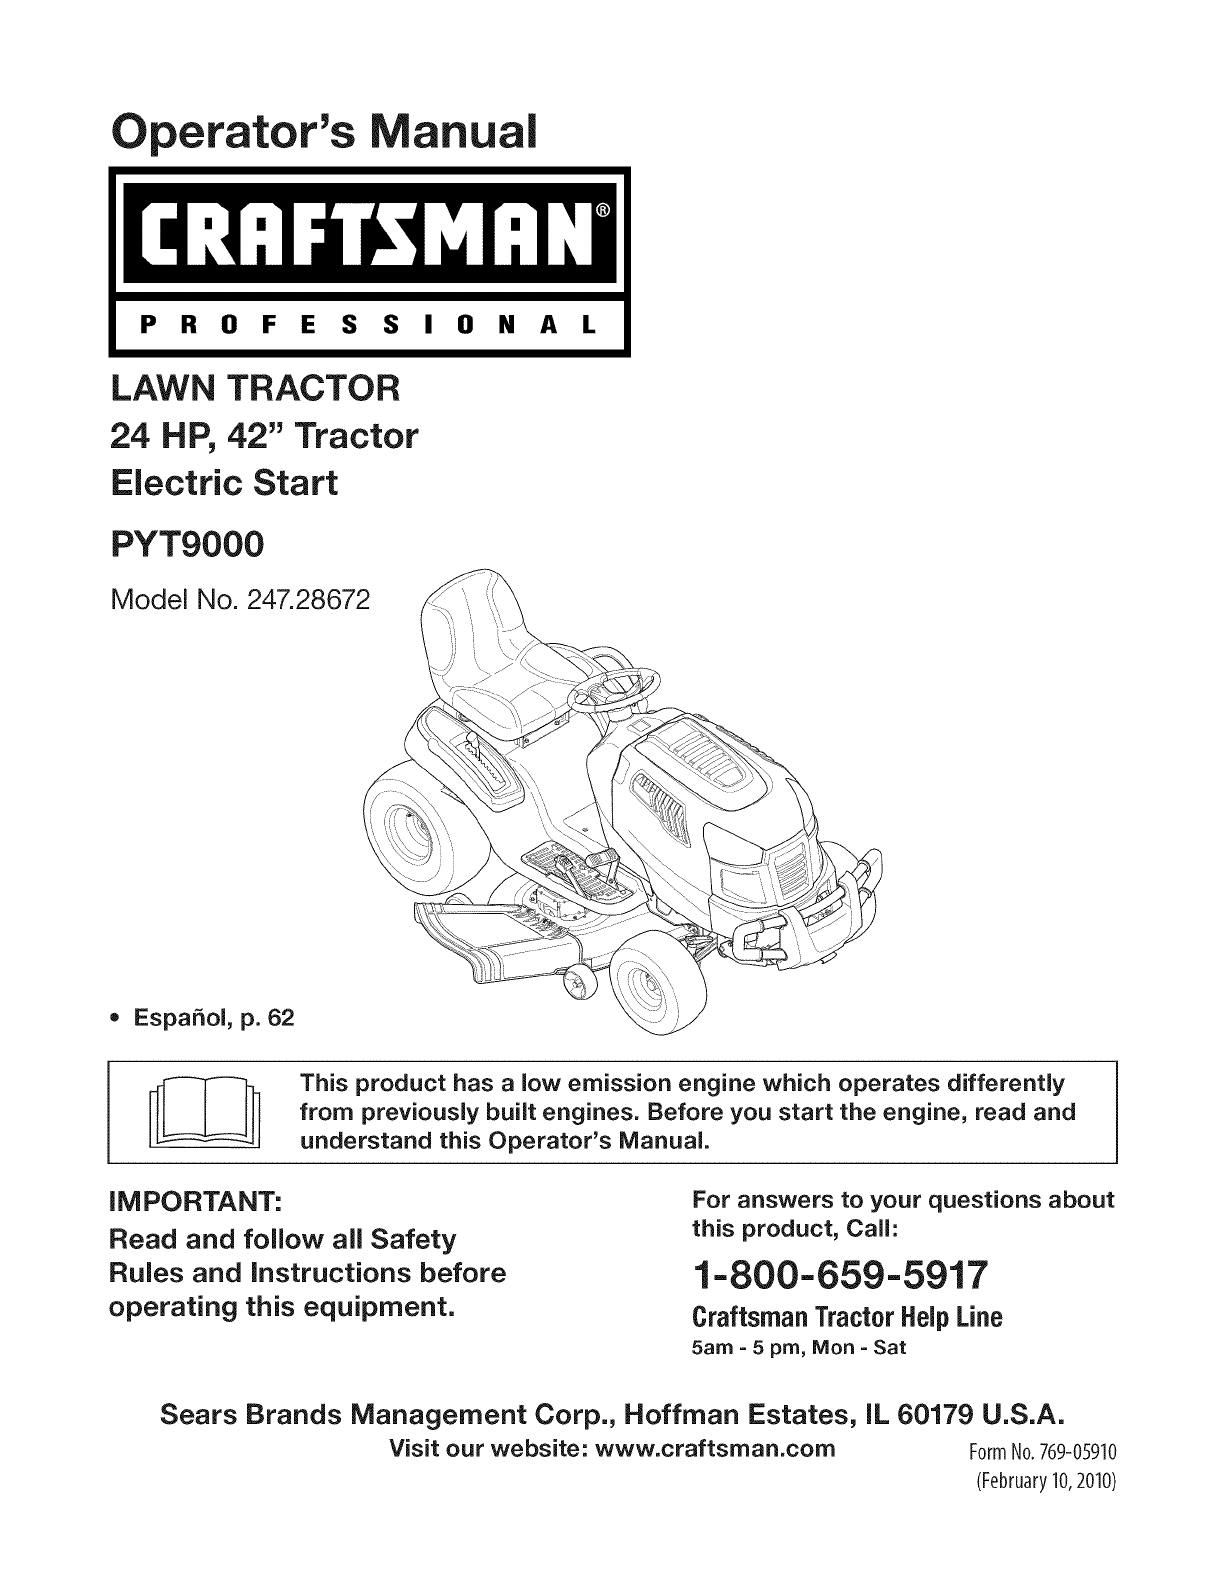 craftsman lawn mower pyt 9000 user guide manualsonline com rh lawnandgarden manualsonline com Sears Craftsman ManualsOnline Craftsman LT 2000 Manual PDF